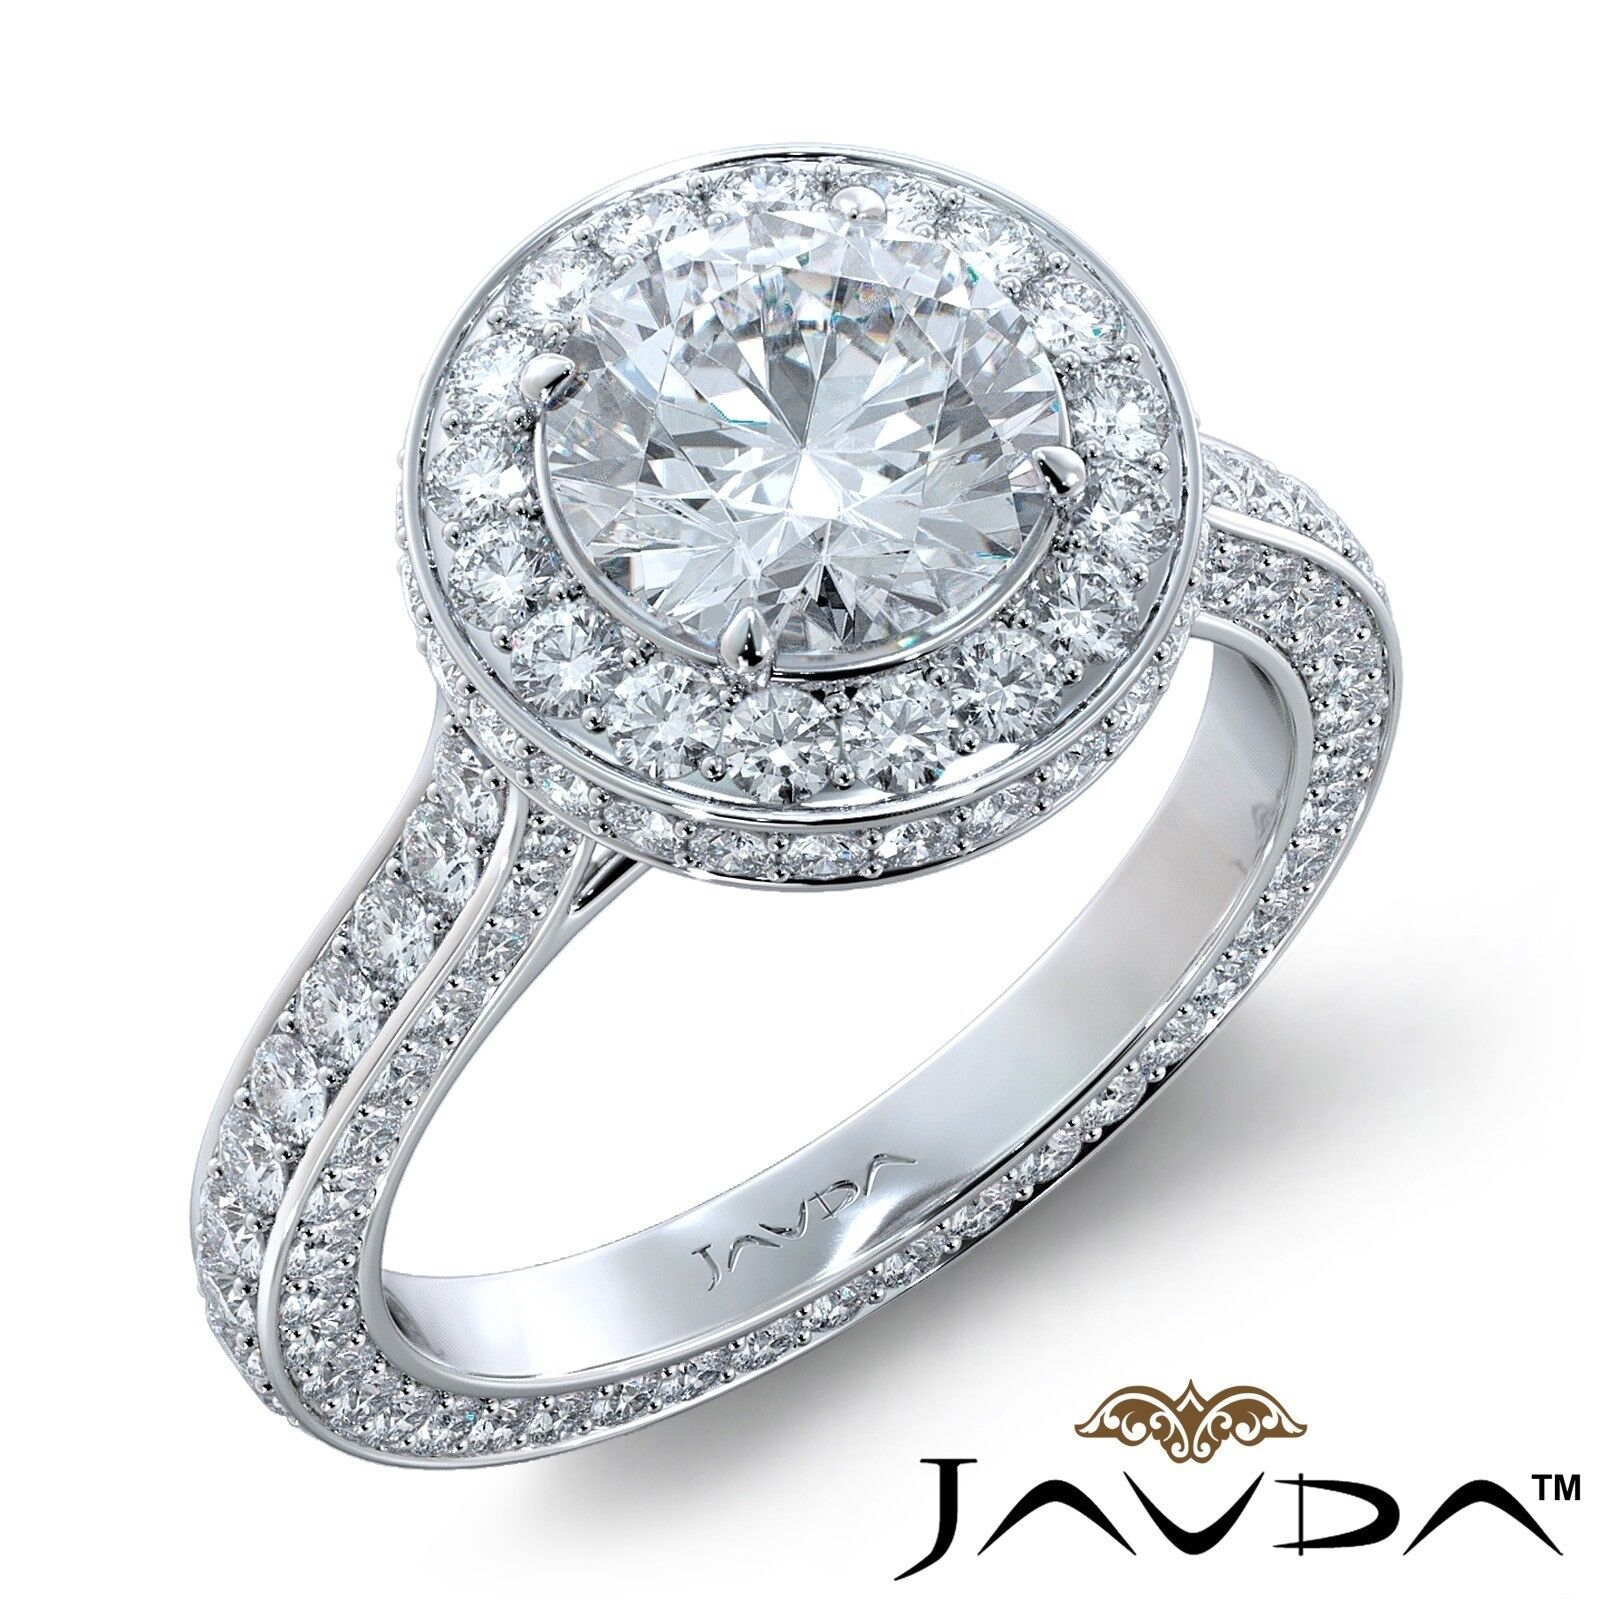 3.2ctw Accent Eternity Halo Pave Round Diamond Engagement Ring GIA F-VVS1 W Gold